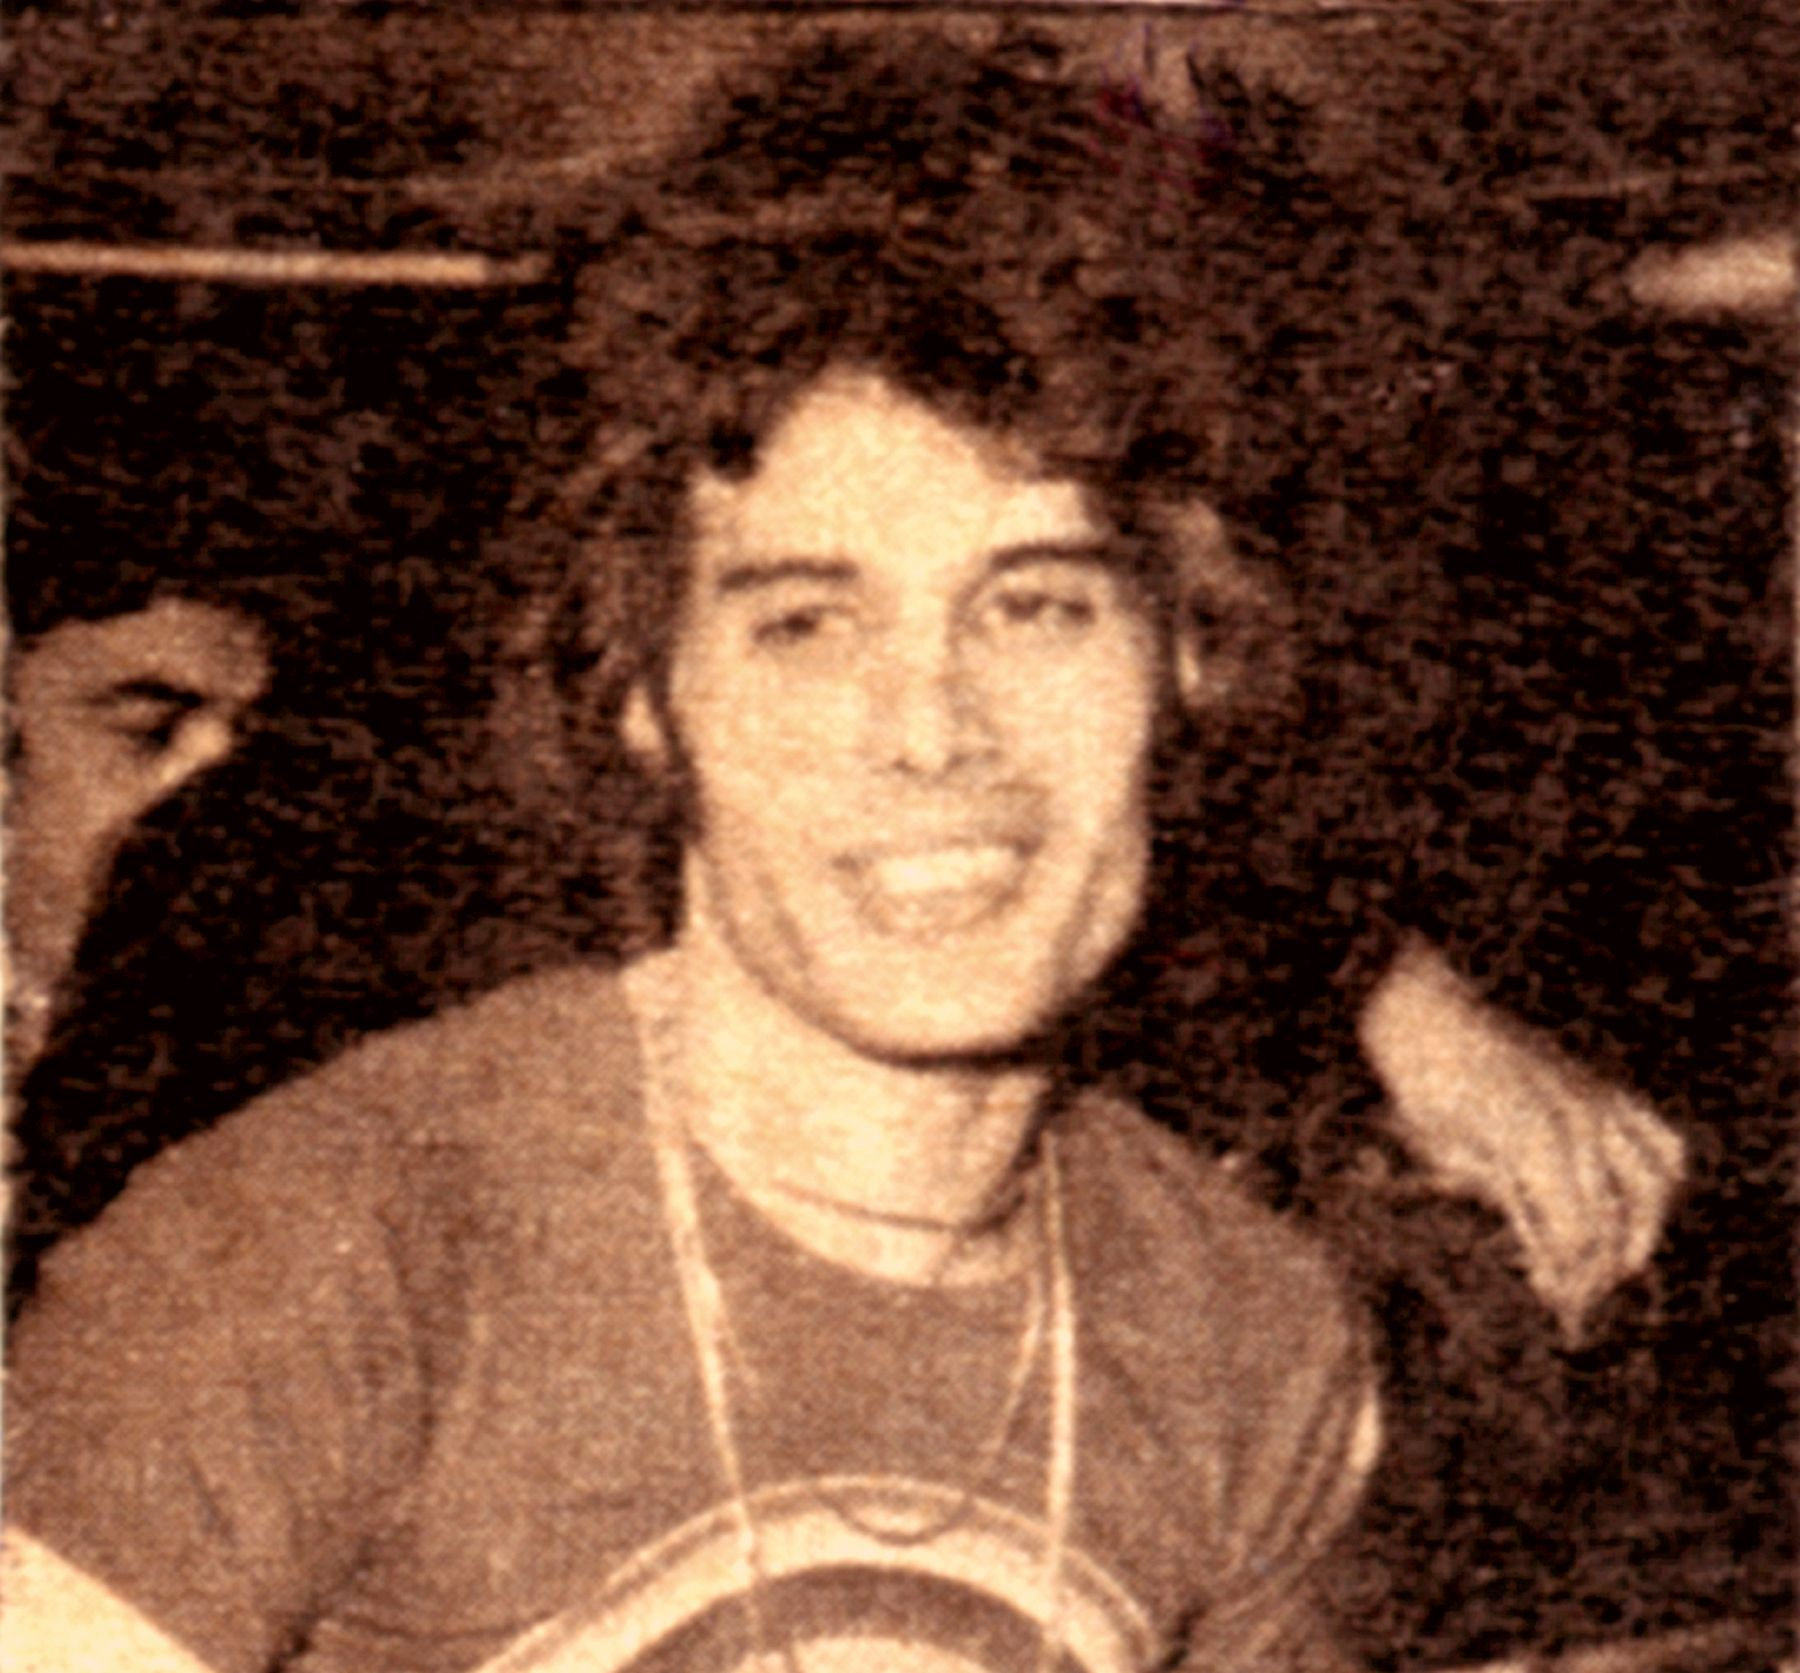 Young Man Freddie Beautiful Smile X Queen Freddie Mercury Freddie Mercury Freddie Mercury Young